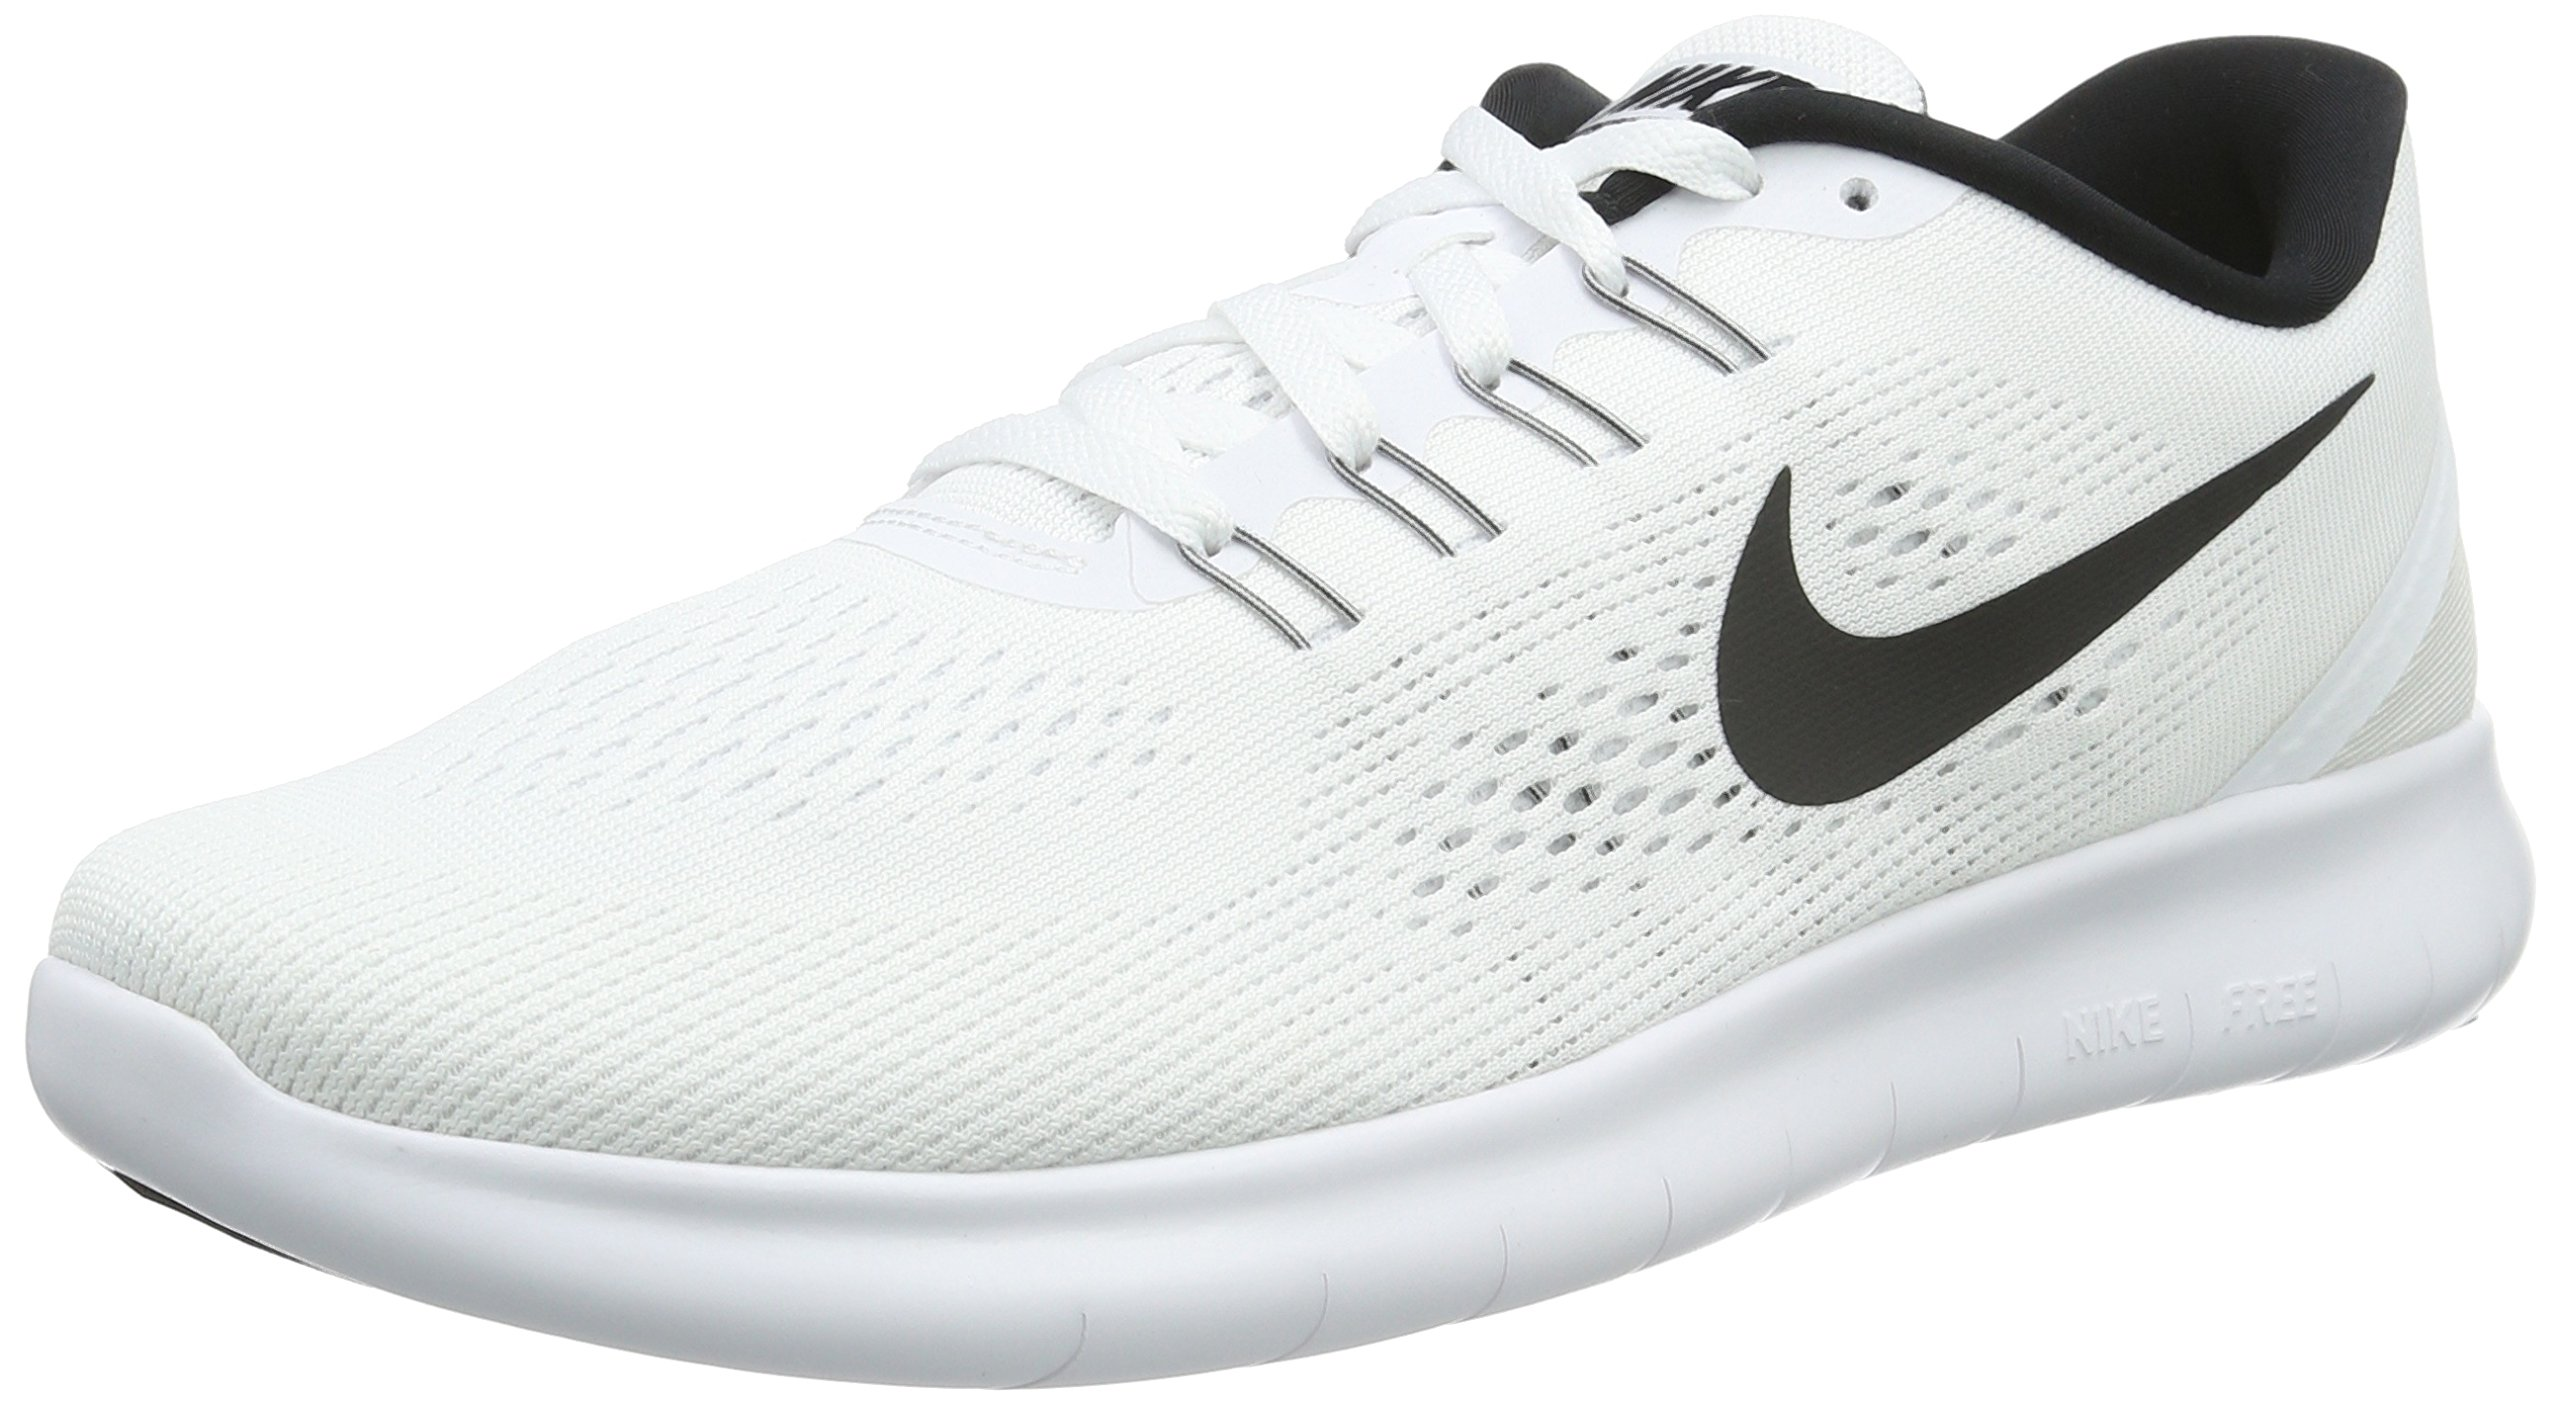 buy online dced3 bda11 Galleon - Nike Mens Free RN Running Shoes White Black 831508-100 Size 9.5